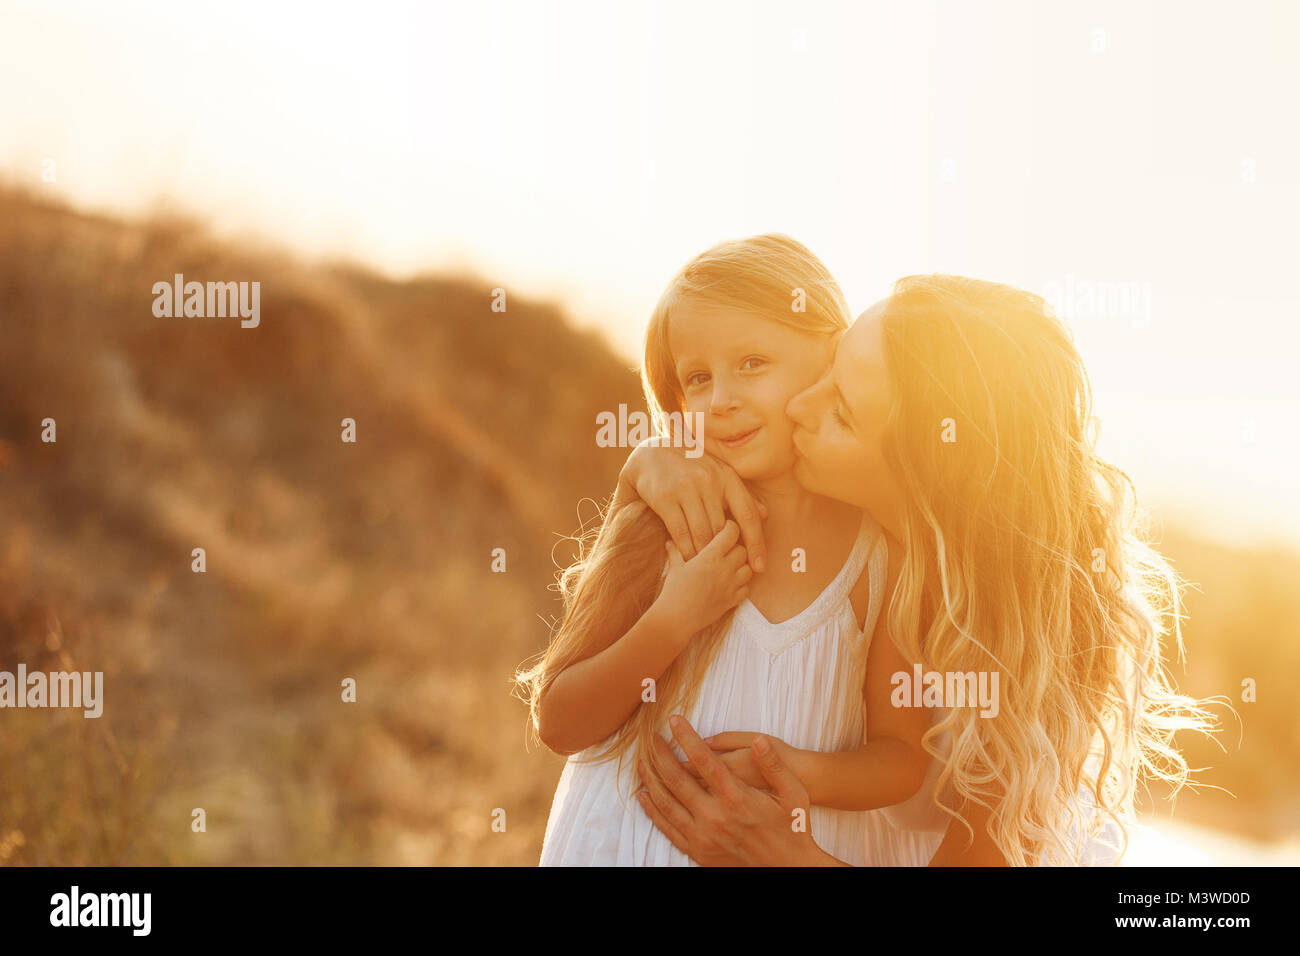 Family, mother and daughter at sunset. The girl bends down and kisses her daughter. Girls in white dresses. They - Stock Image